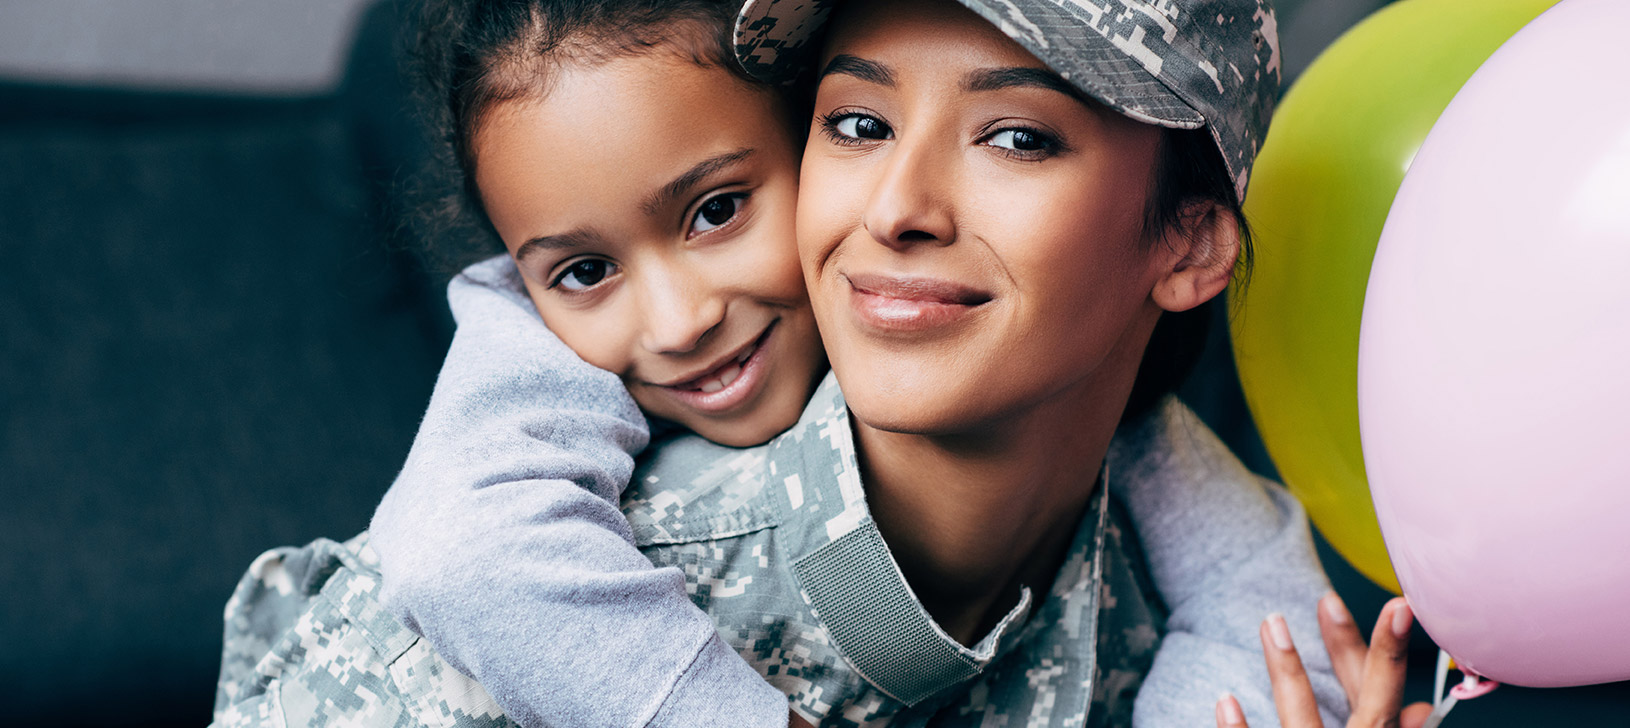 Close up of smiling military family of three. The father is holding their son. They are standing in front of an American flag.